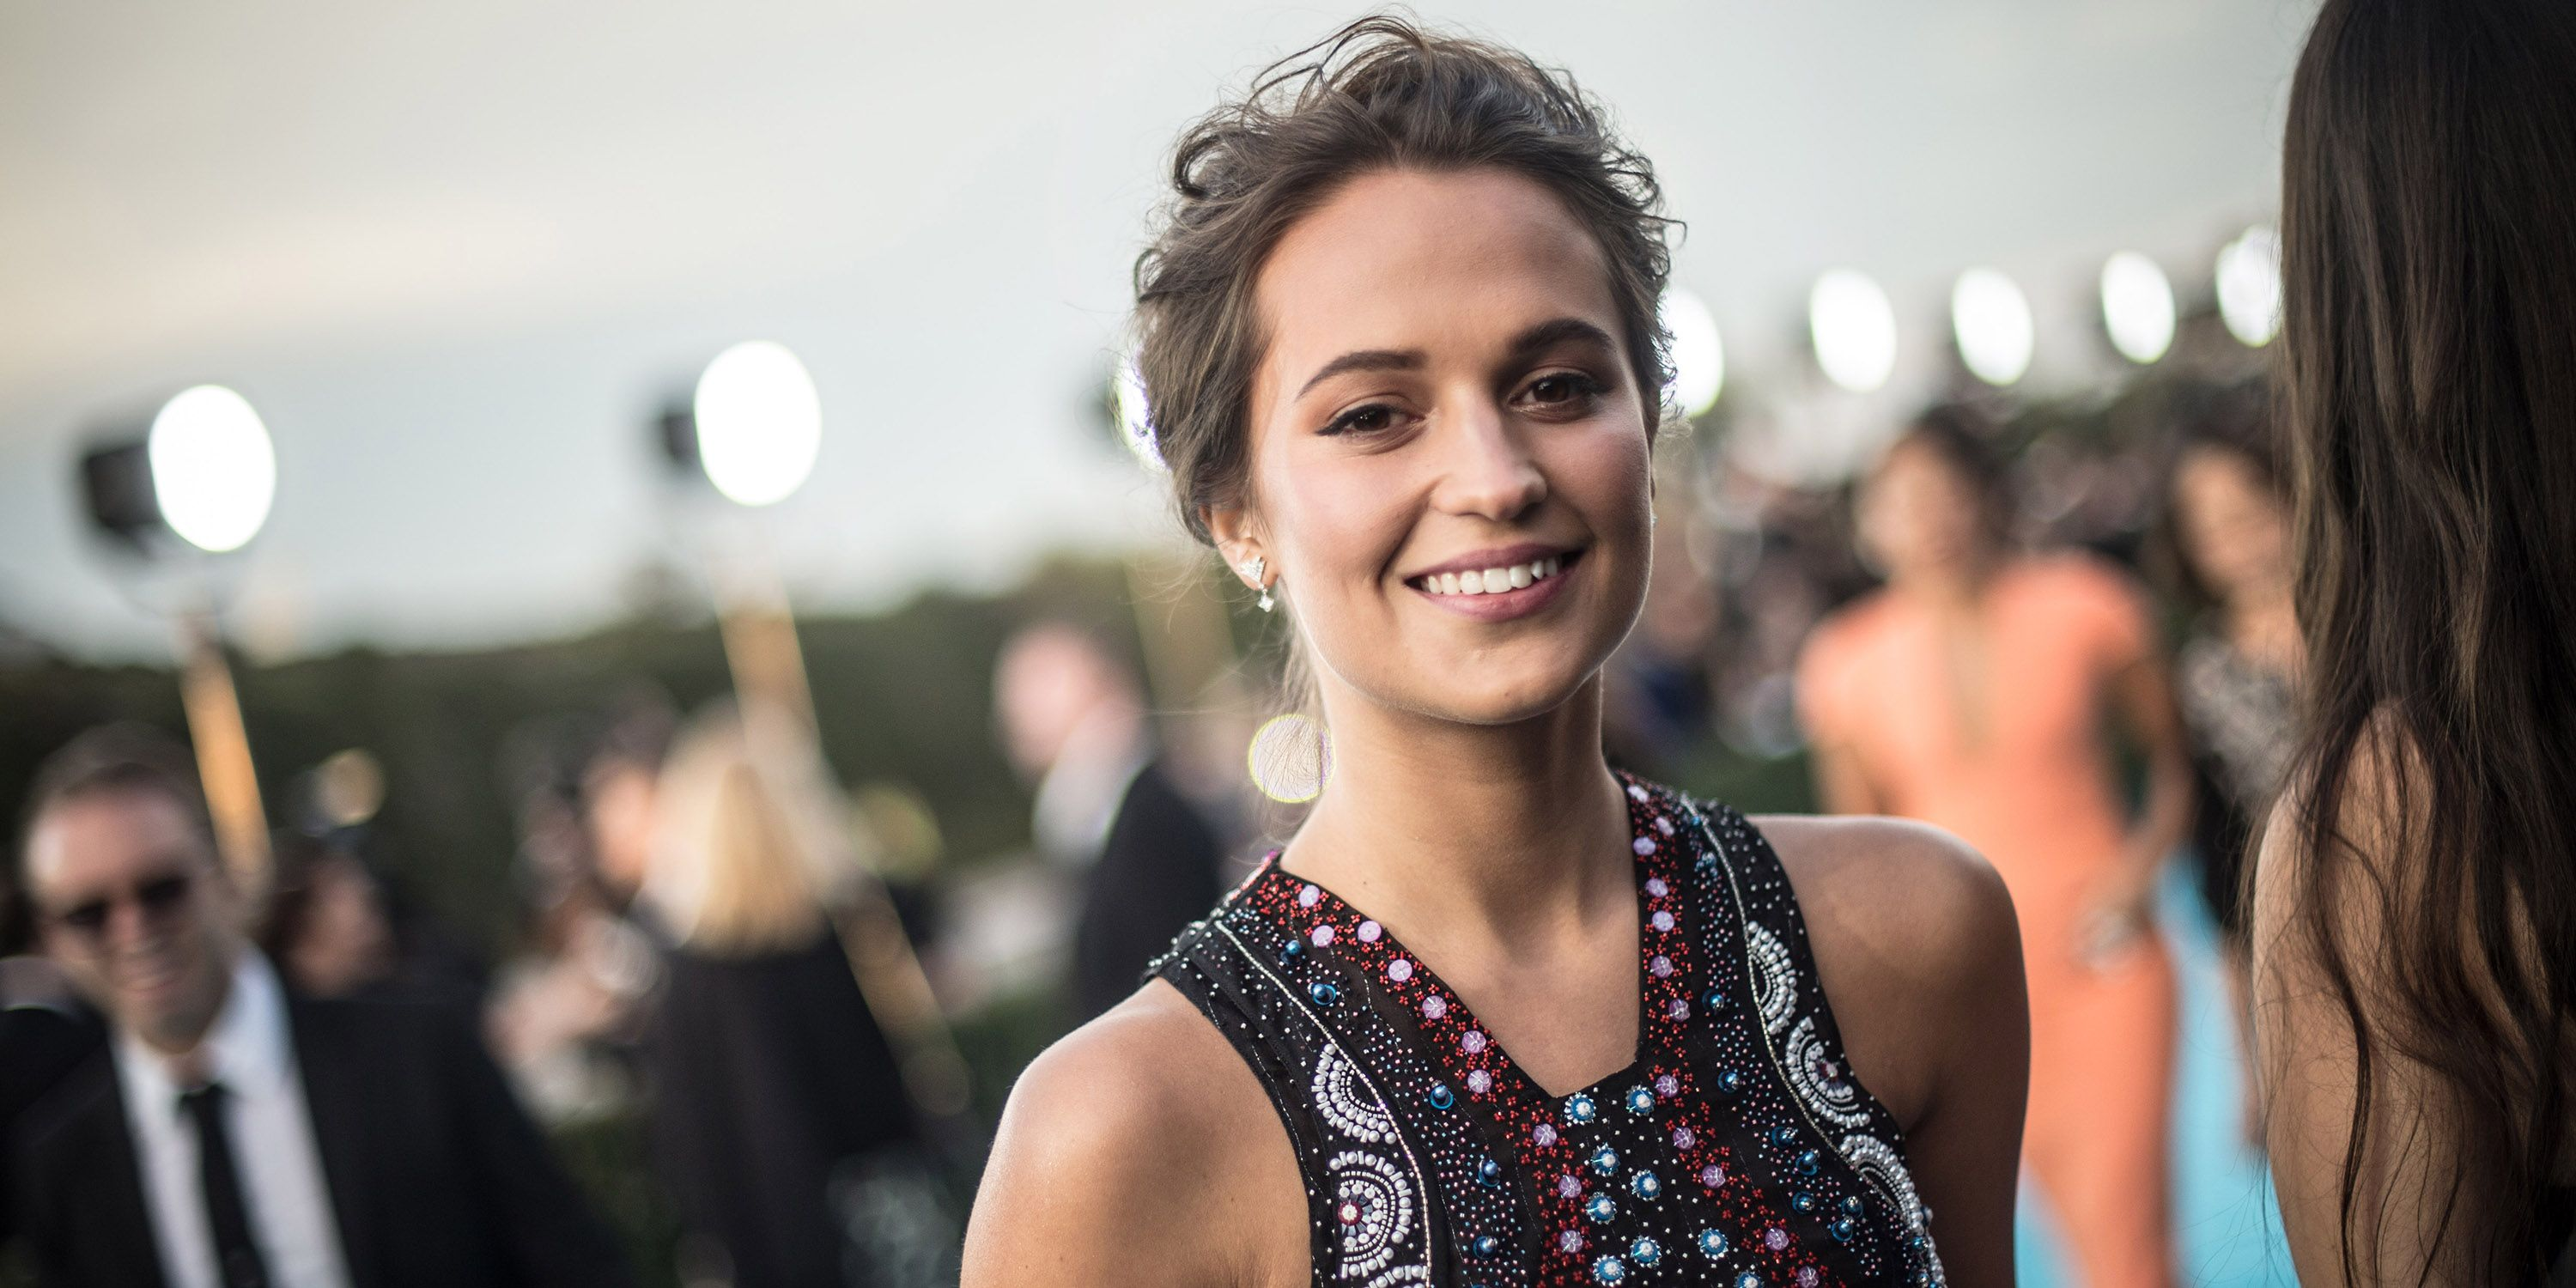 See Alicia Vikander In Action As Lara Croft In The Tomb Raider Reboot